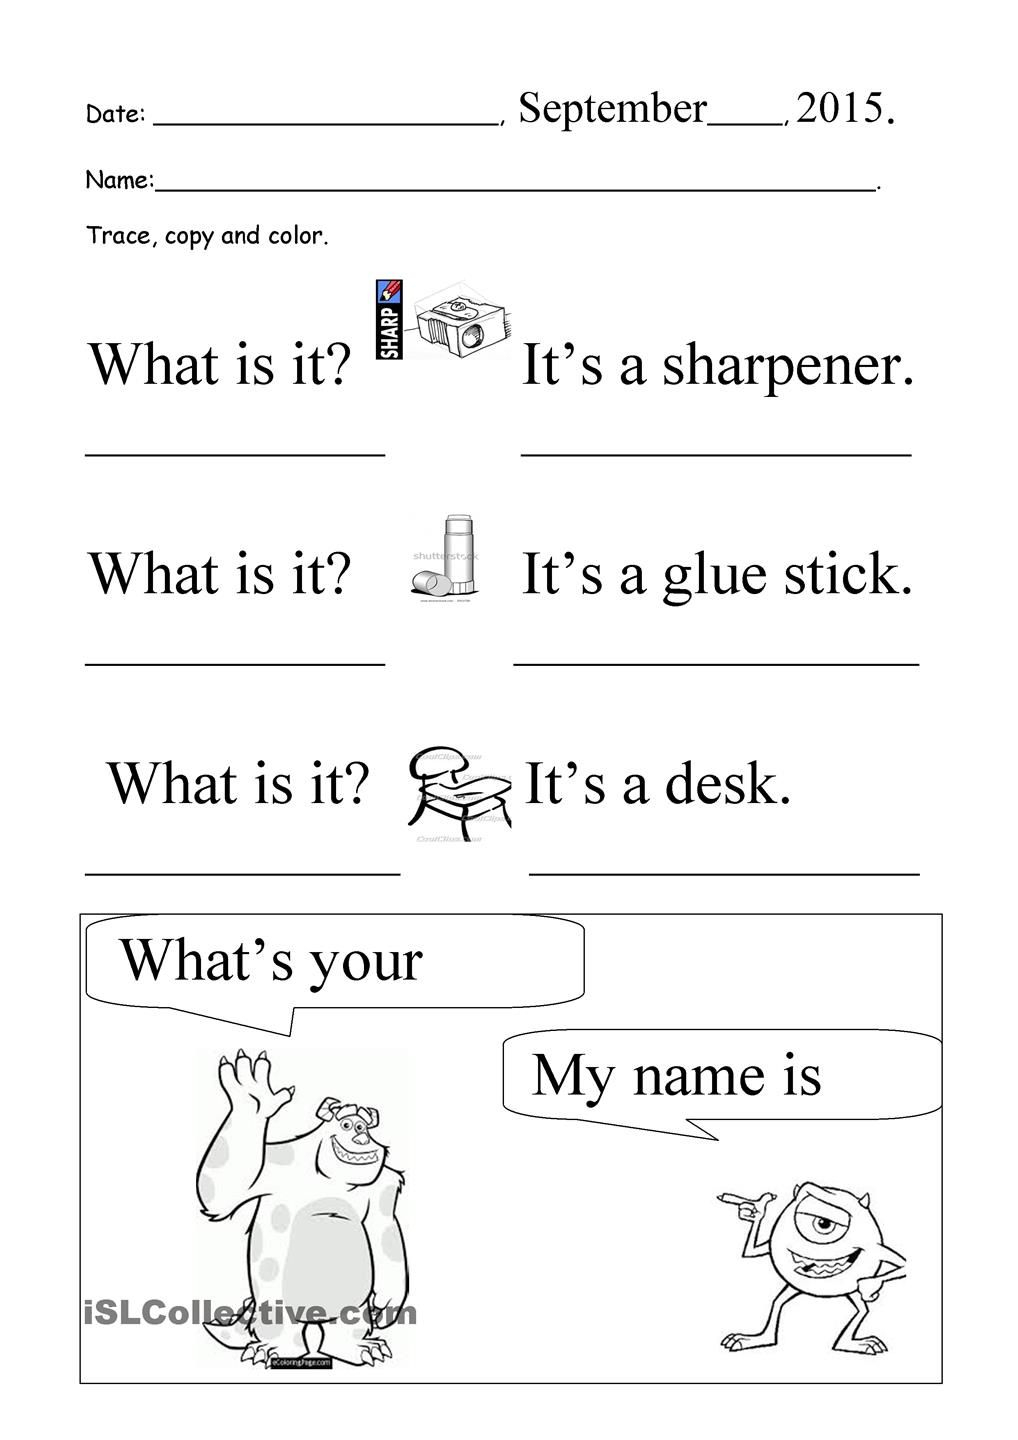 What Is It? What's Your Name? Trace And Copy | Inglese within Name Tracing And Copying Worksheets